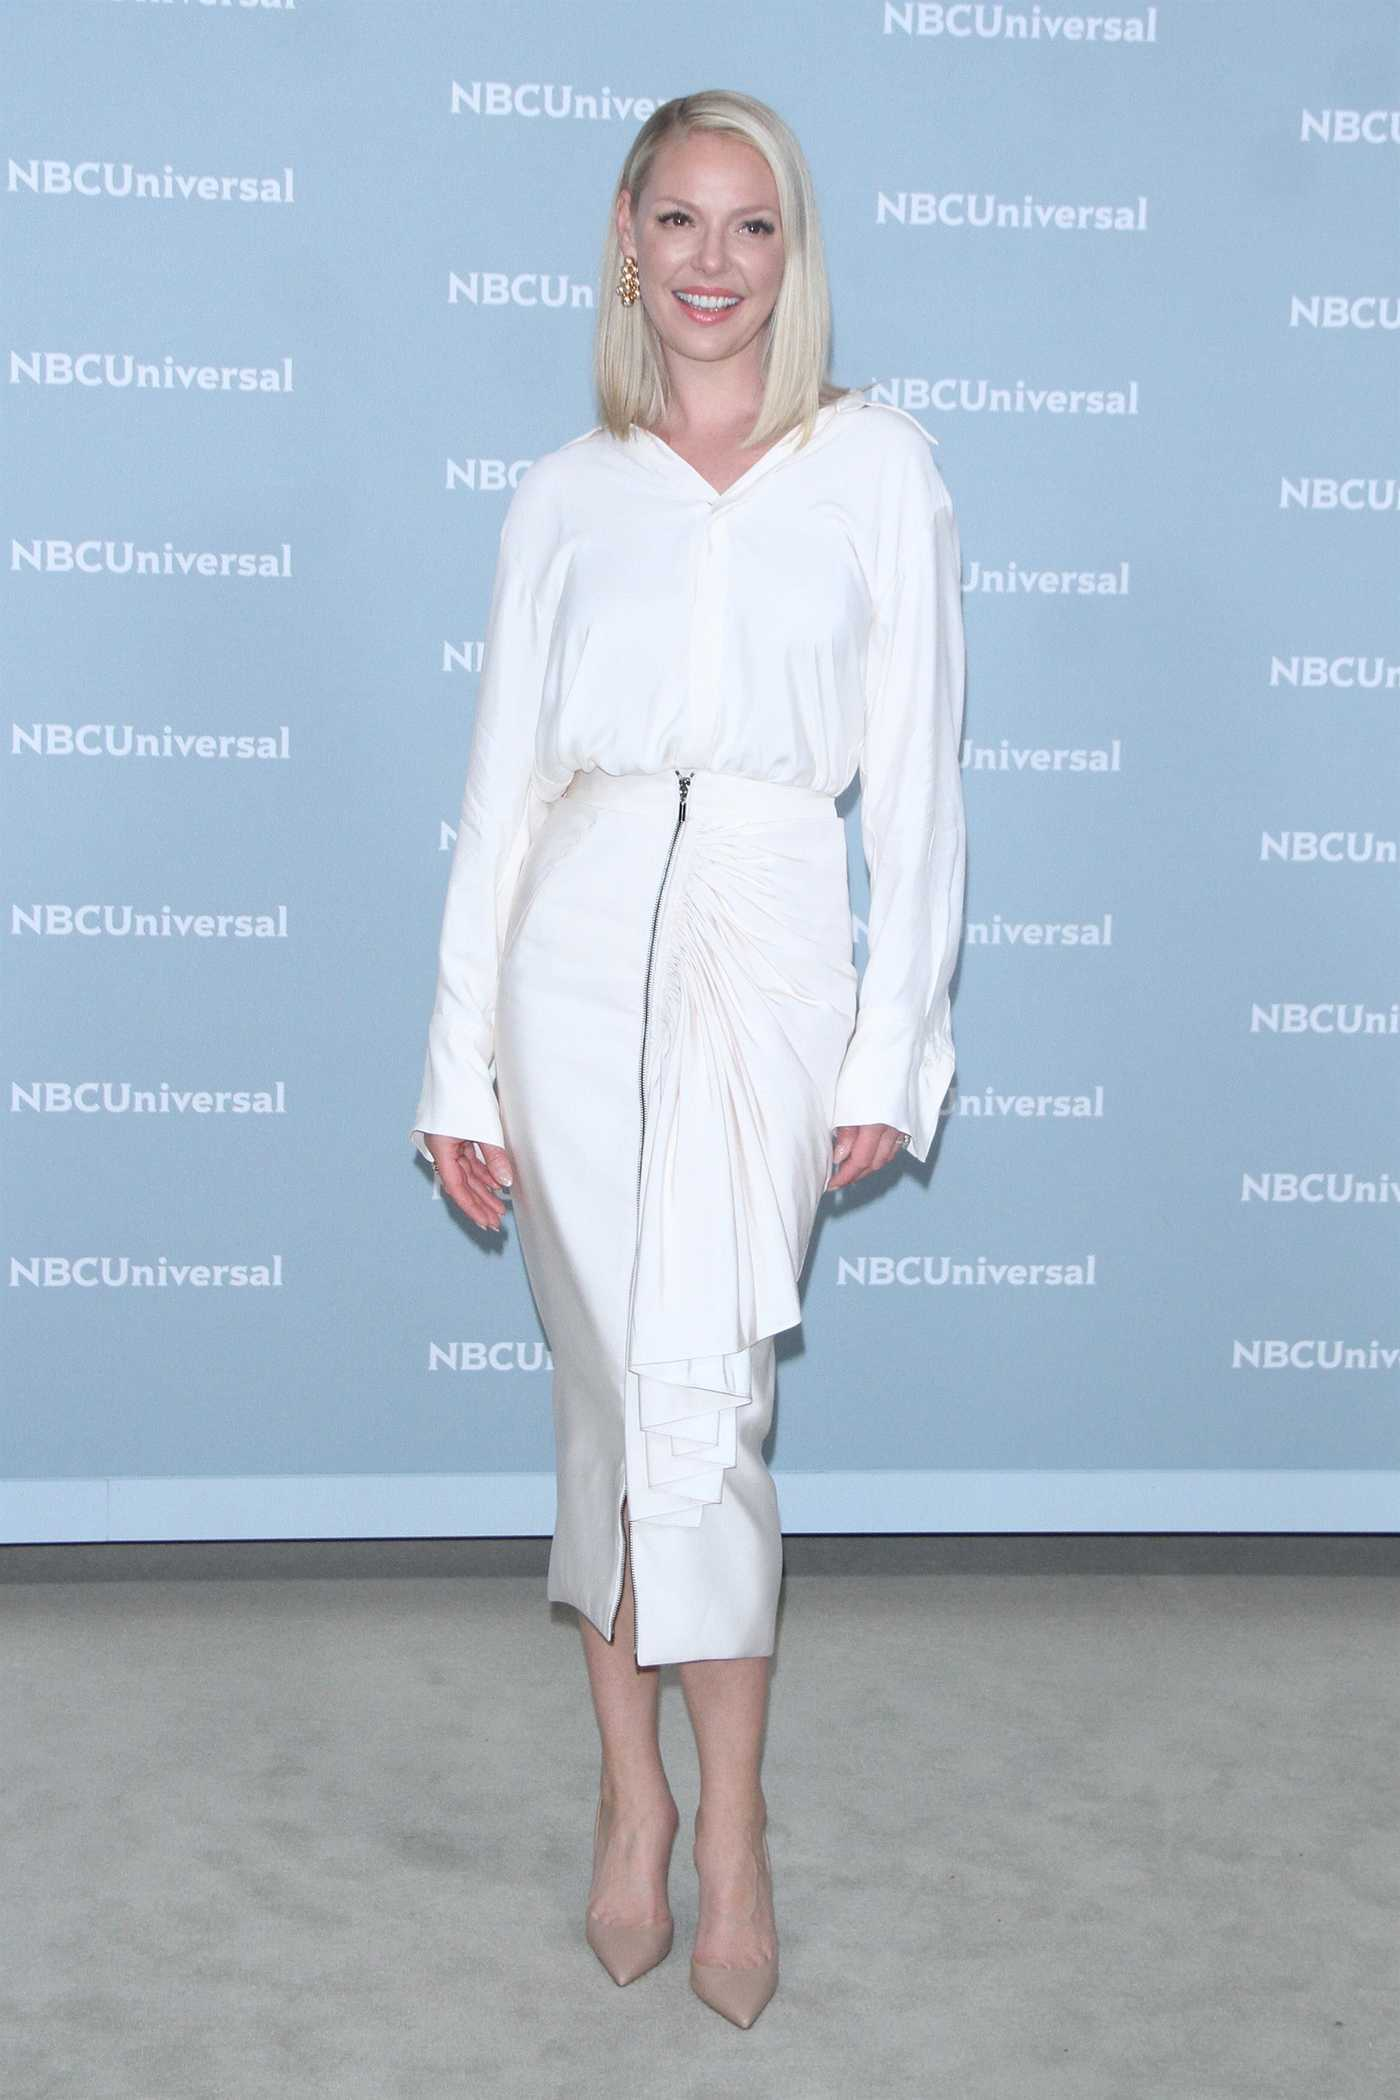 Katherine Heigl at NBCUniversal Upfront Presentation in New York City 05/14/2018